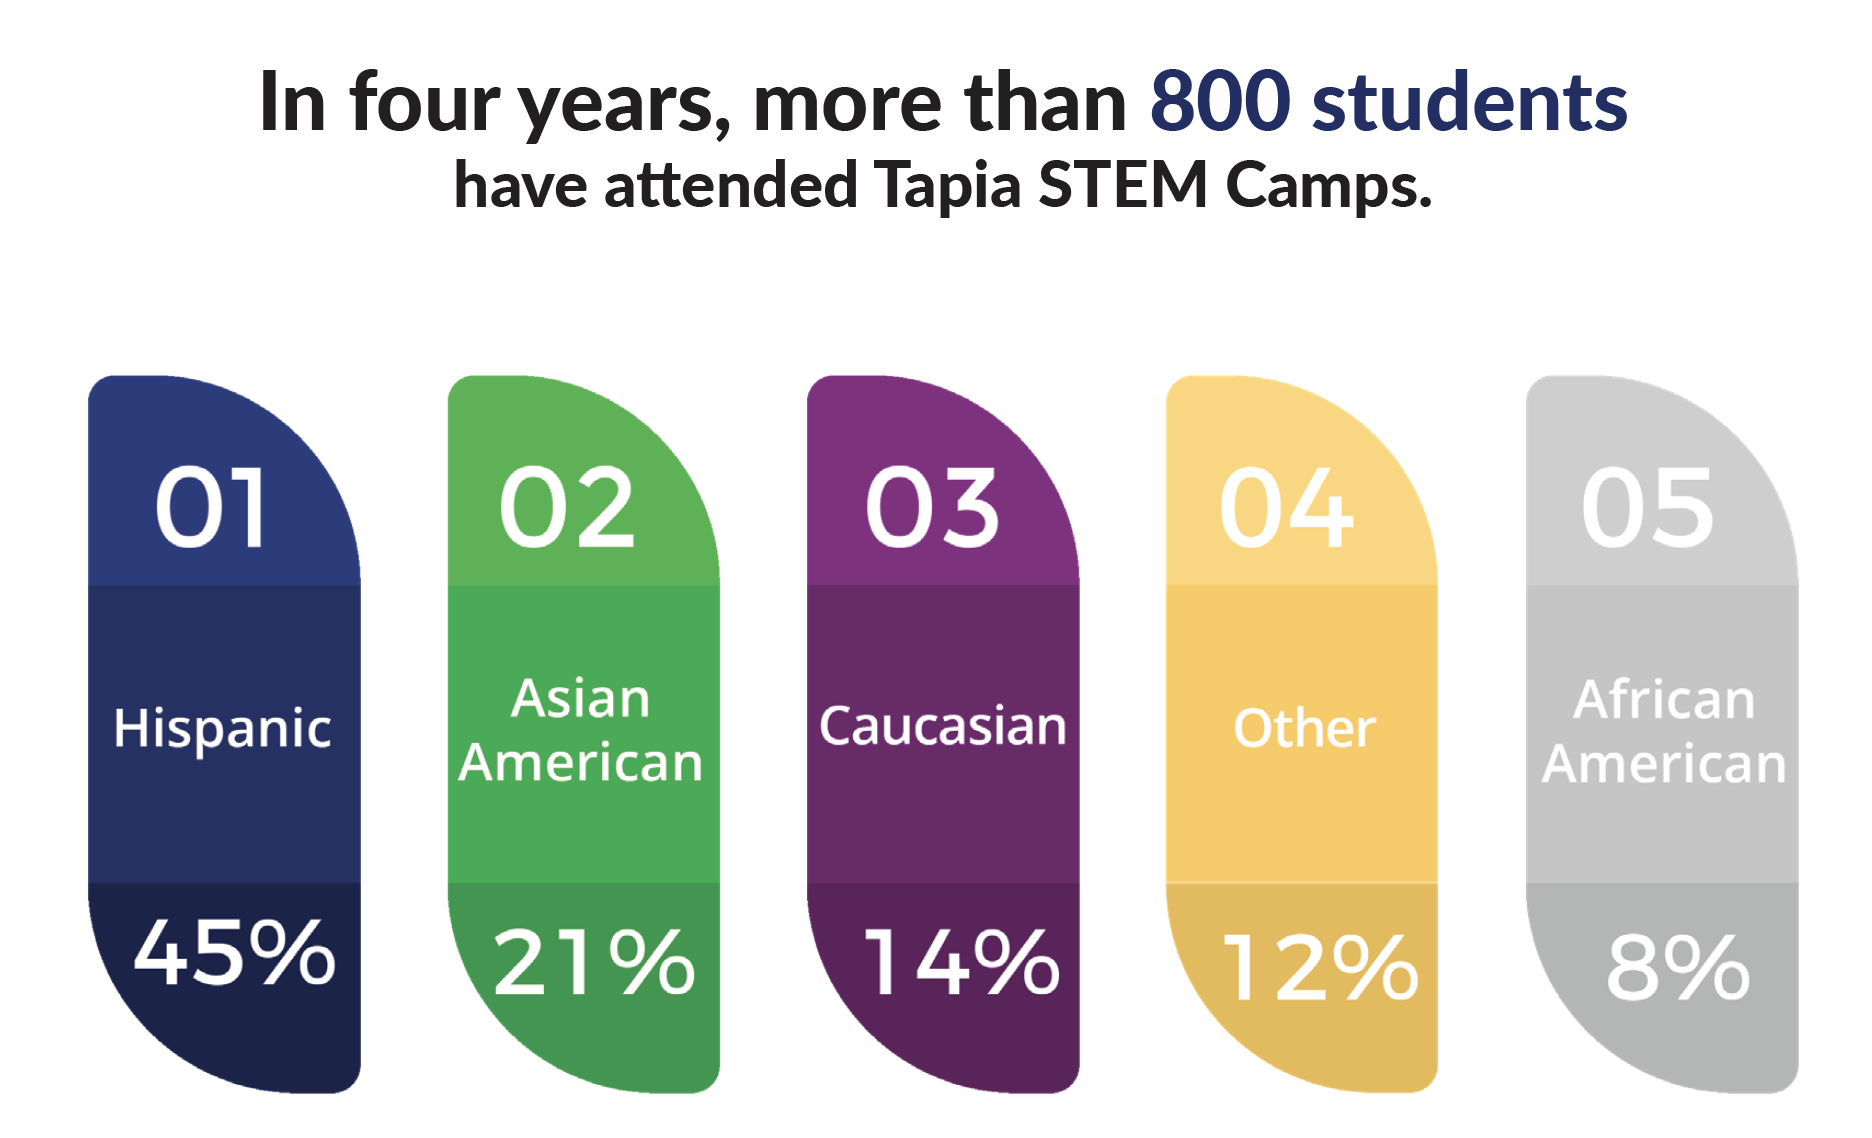 In 4 years, more than 800 students have attended Tapia STEM Camps. 45% Hispanic, 21% Asian American, 14% Caucasian, 12% Other, 8% African American